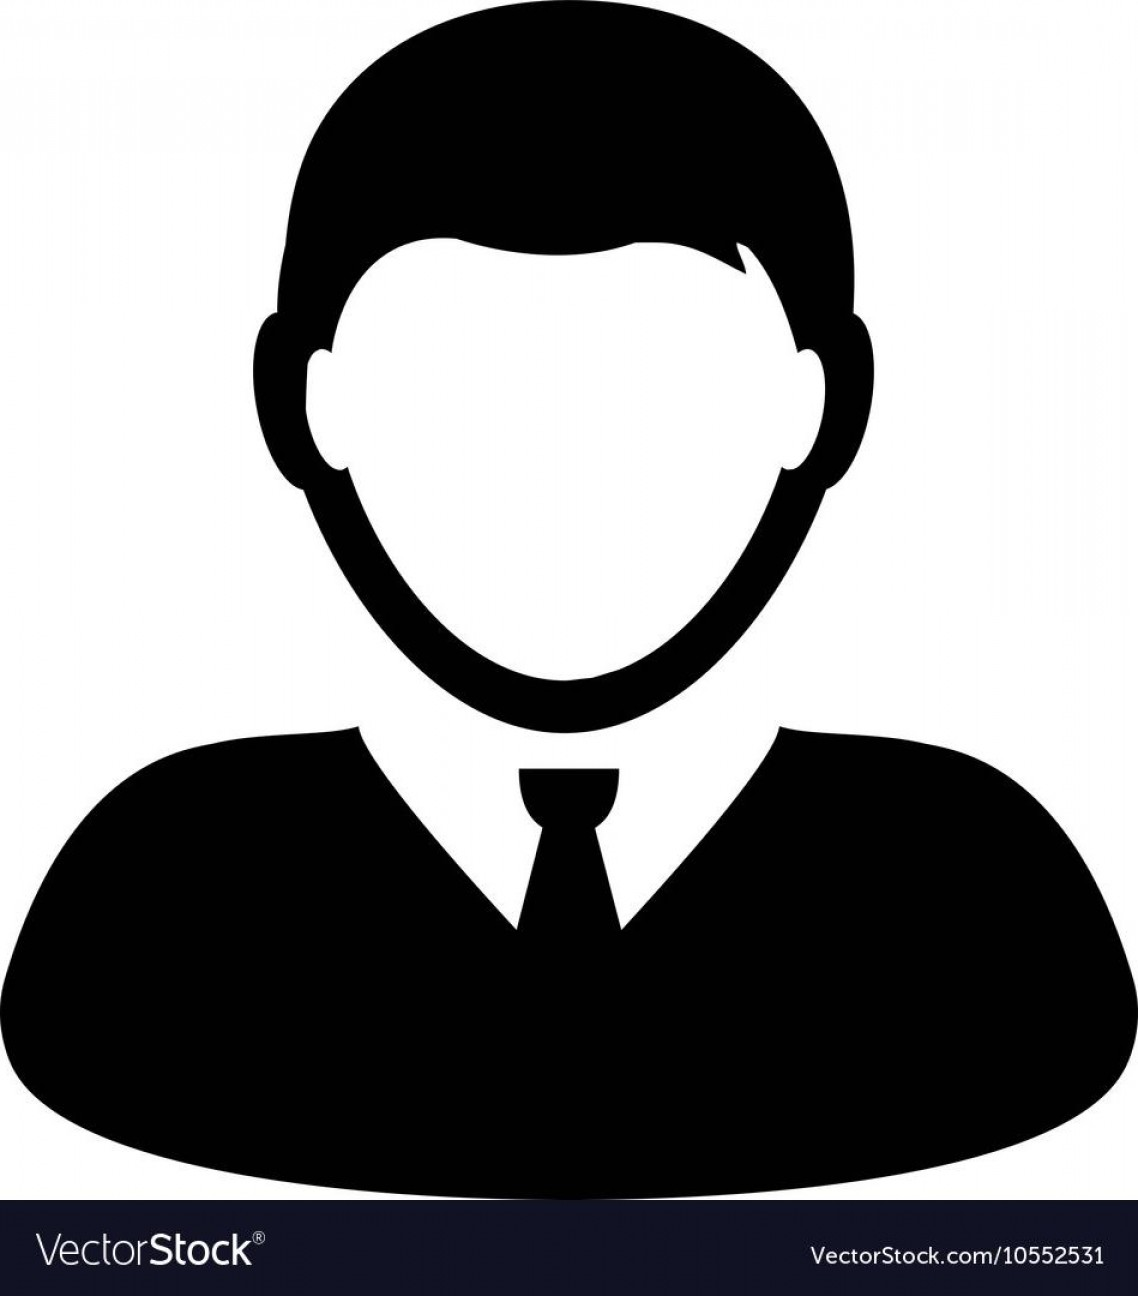 User Icon Vector Free: Best Hd User Icon Businessman Profile Man Avatar Vector File Free